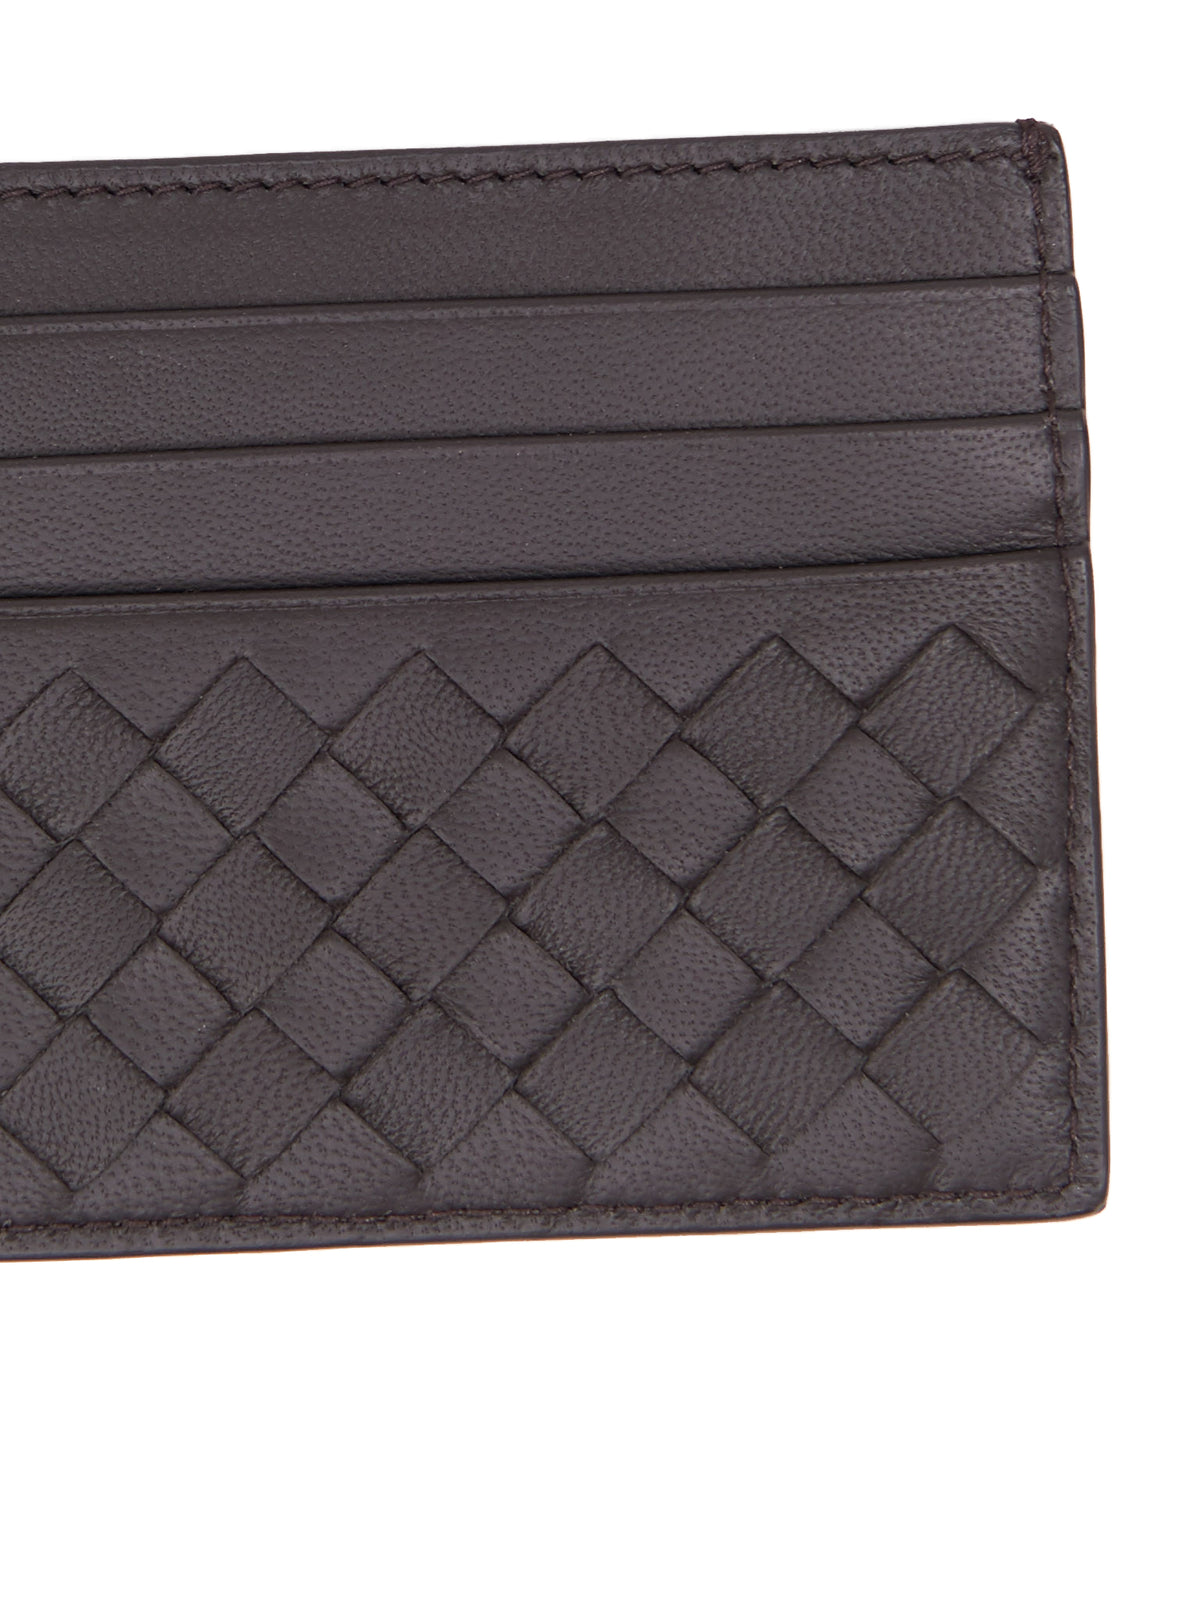 Bottega Veneta Card Case - Hlorenzo Detail